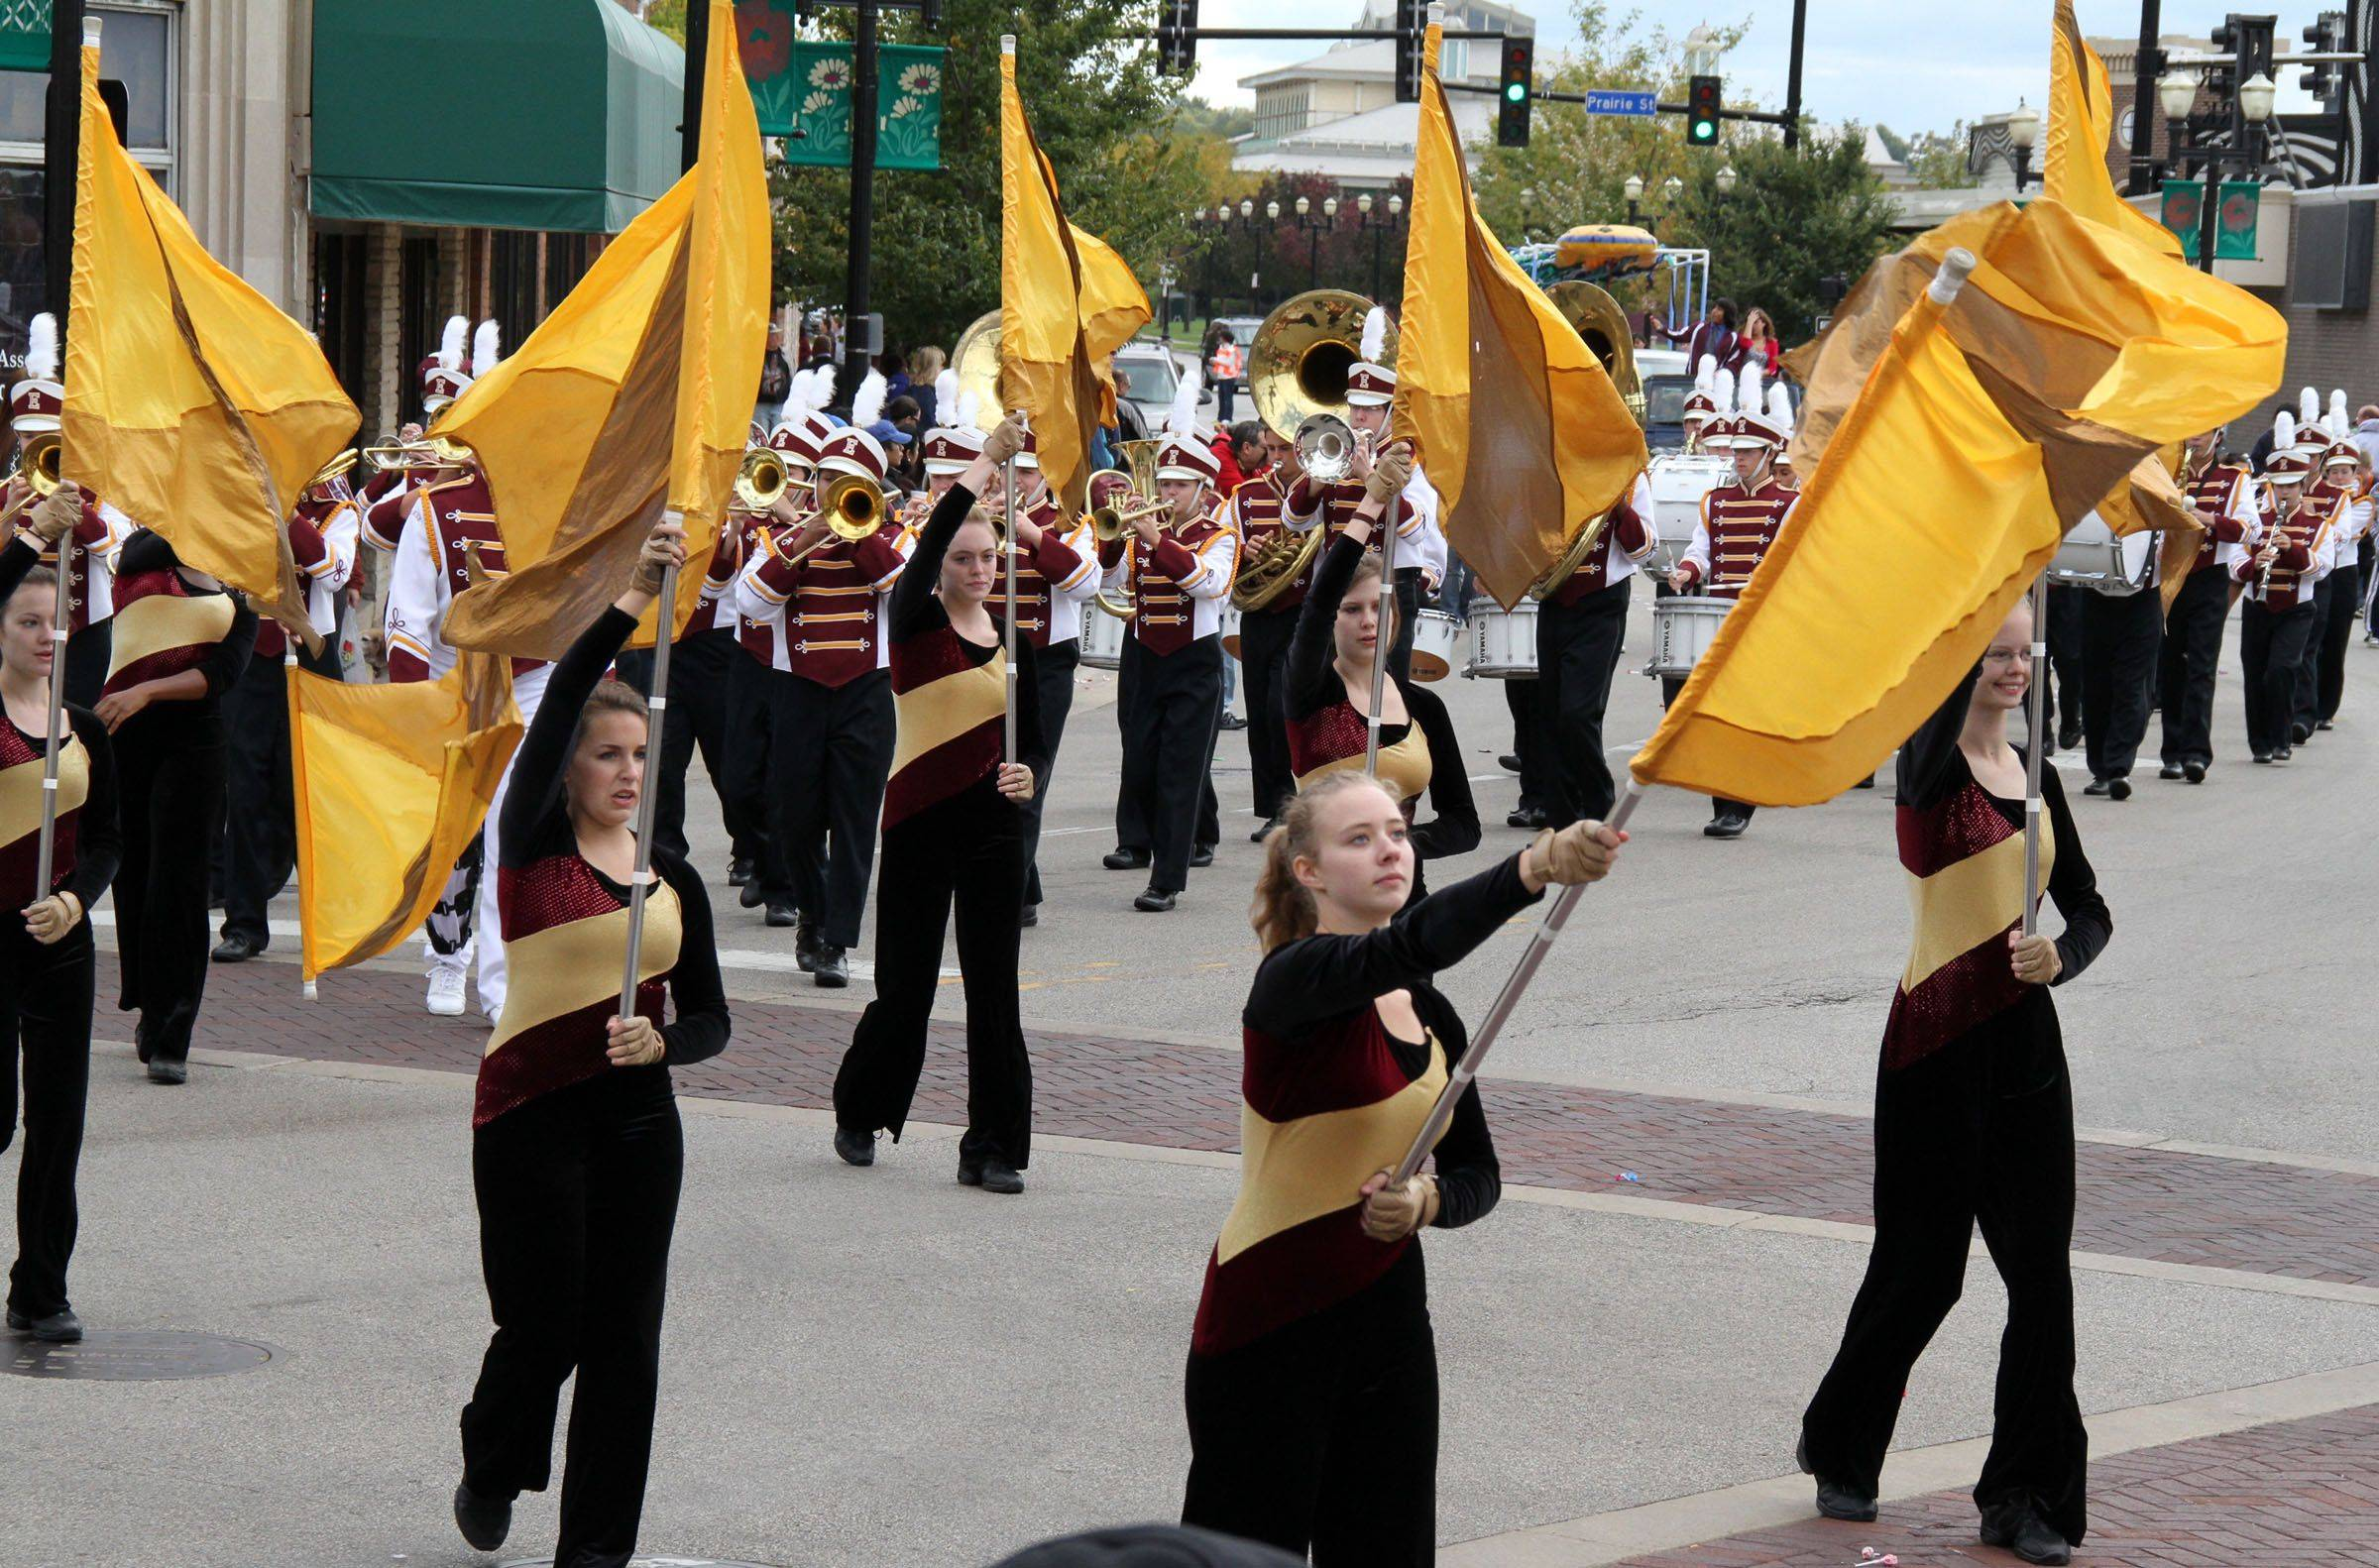 The Elgin High School flags squard marches in the homecoming parade through downtown Elgin on Sunday, October 3.